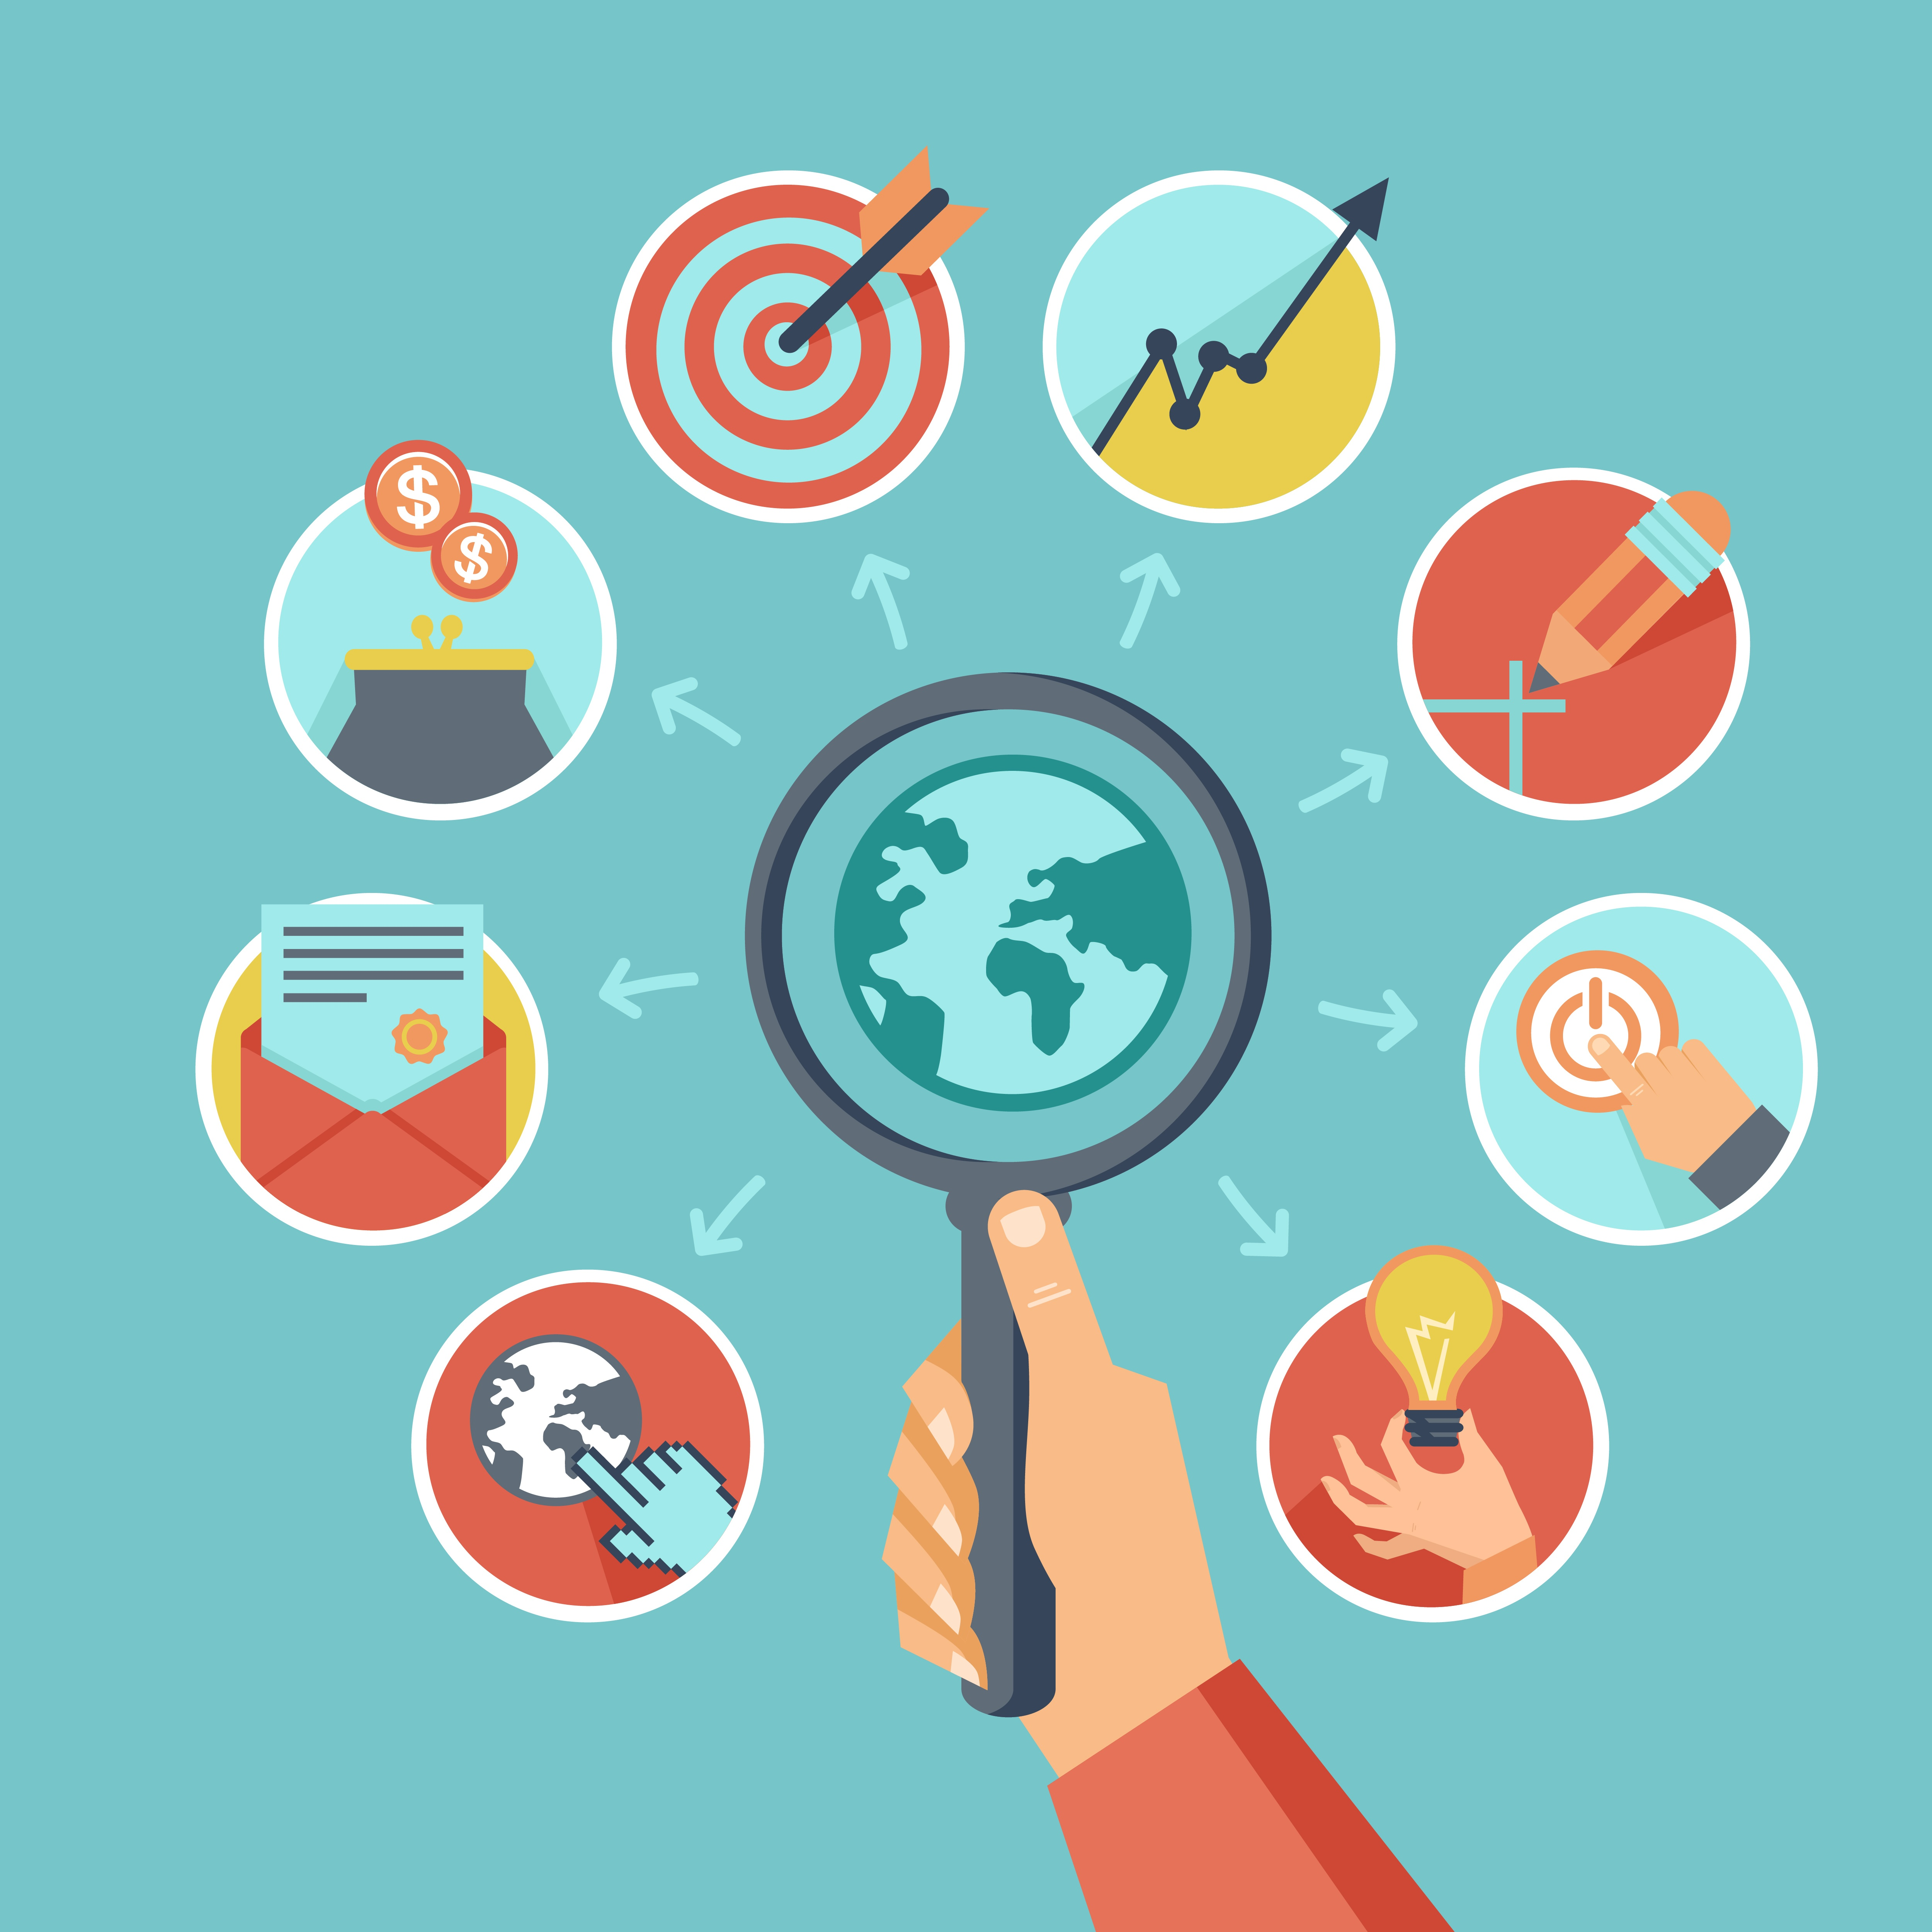 Identify goals for your employee recognition program   TemboSocial